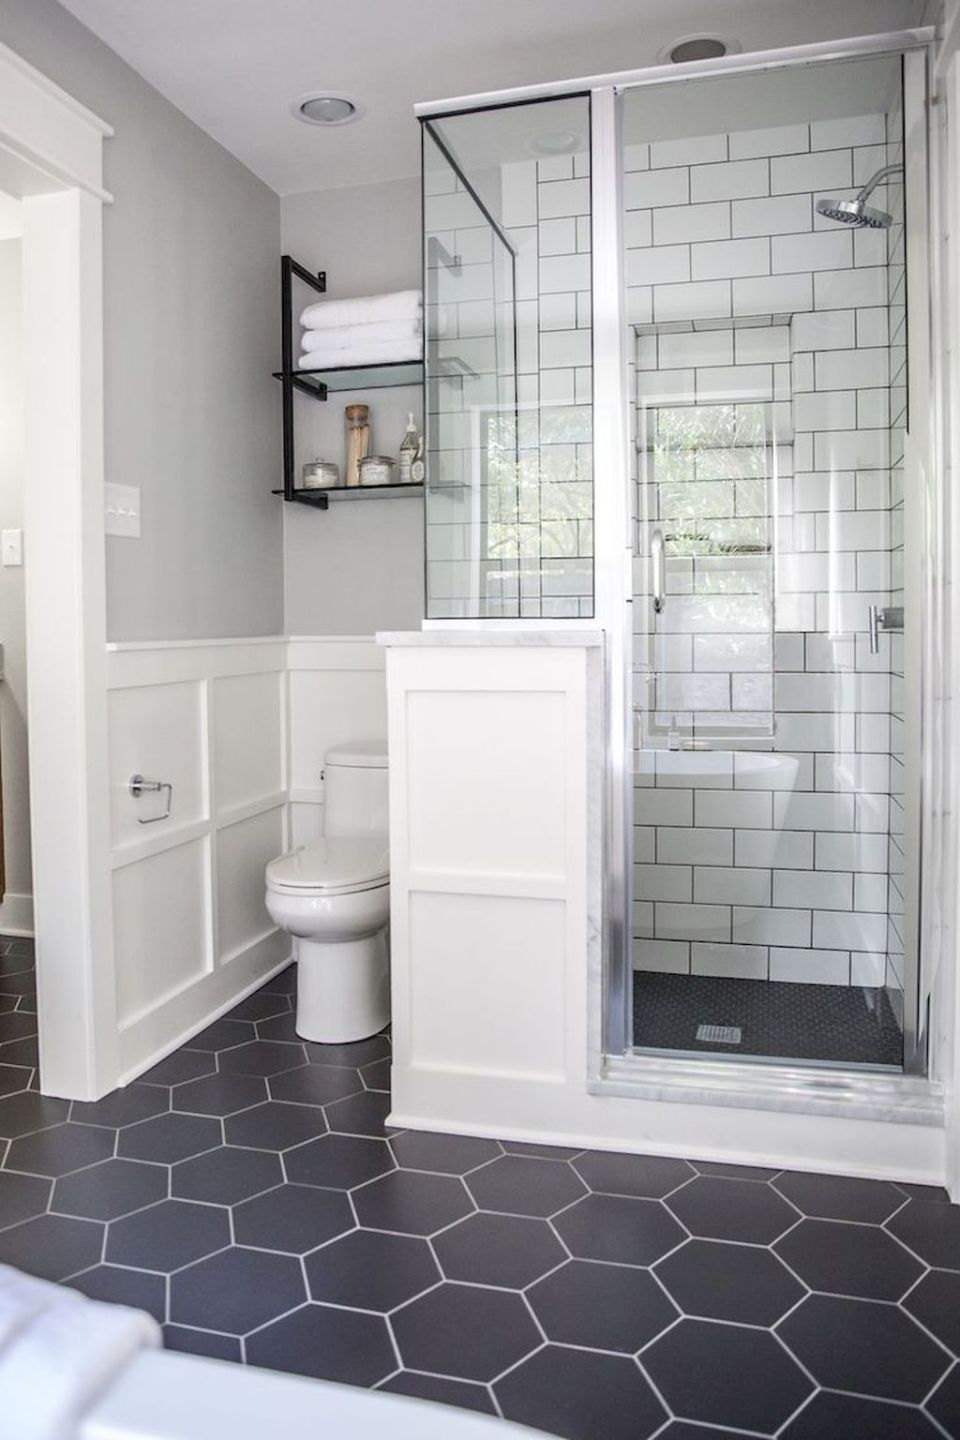 Insane Farmhouse Bathroom Remodel Ideas 45 Idecorgram Com Small Bathroom Remodel Master Bathroom Renovation Bathrooms Remodel